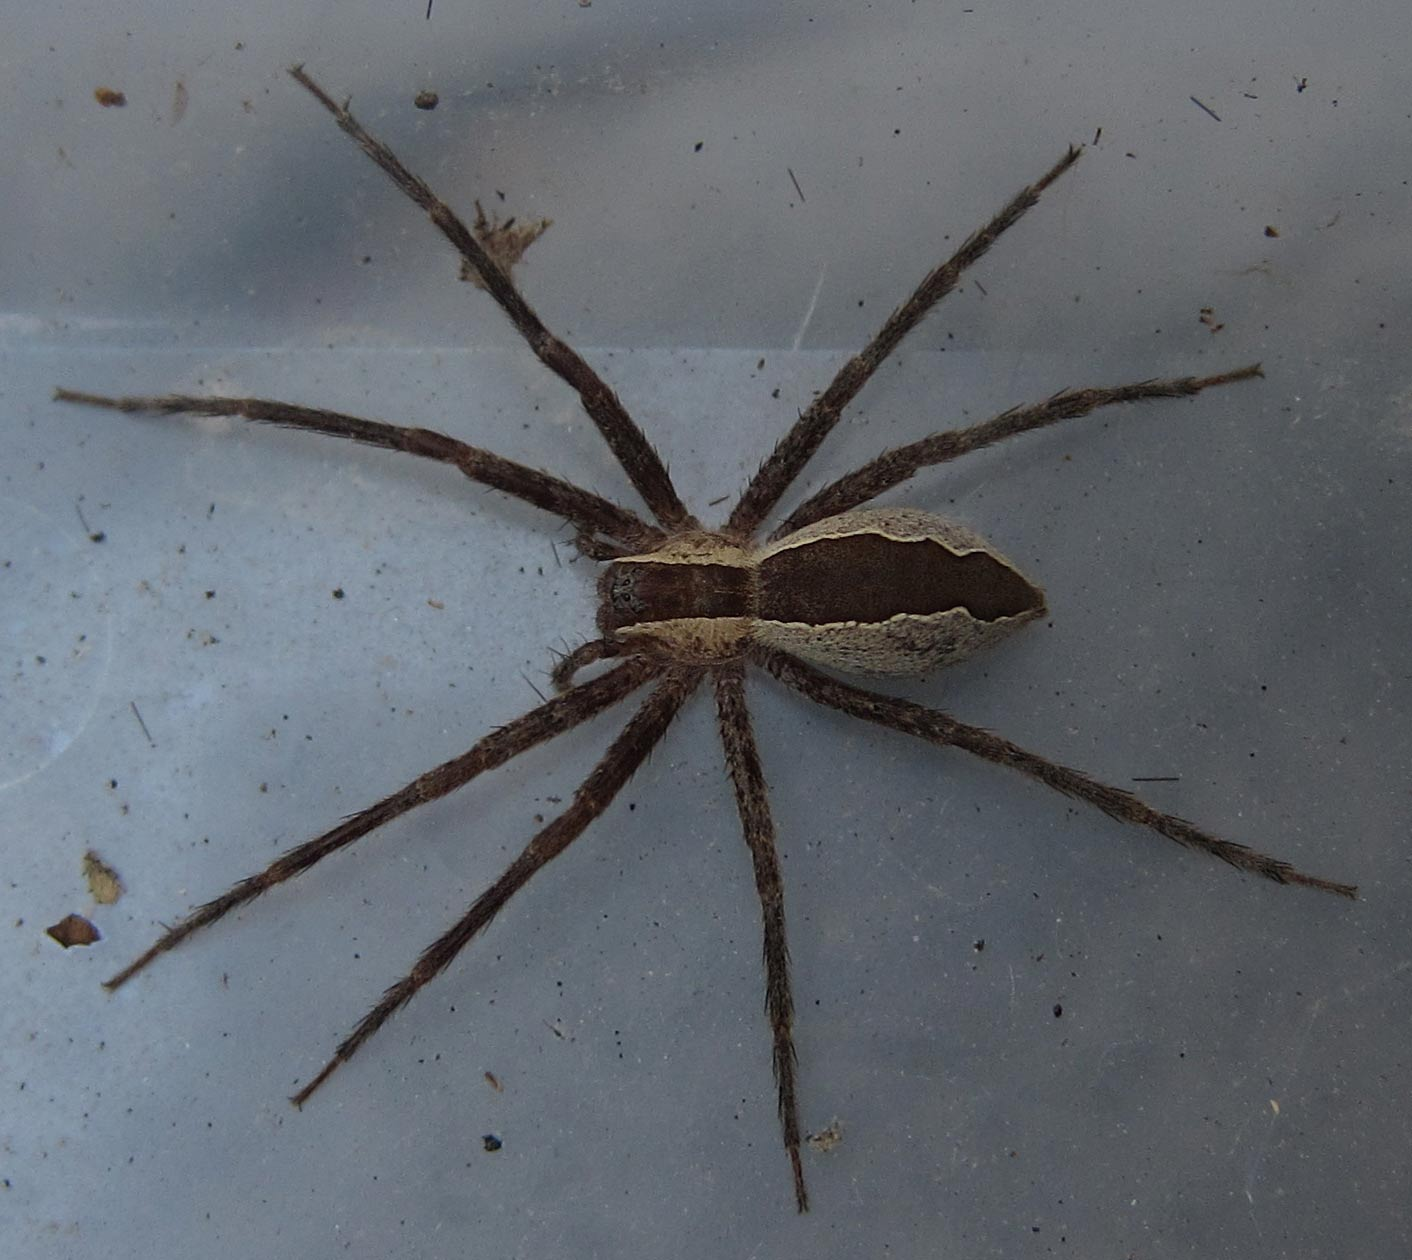 Spiders Of Cape Cod Part - 37: Nursery Web Spider